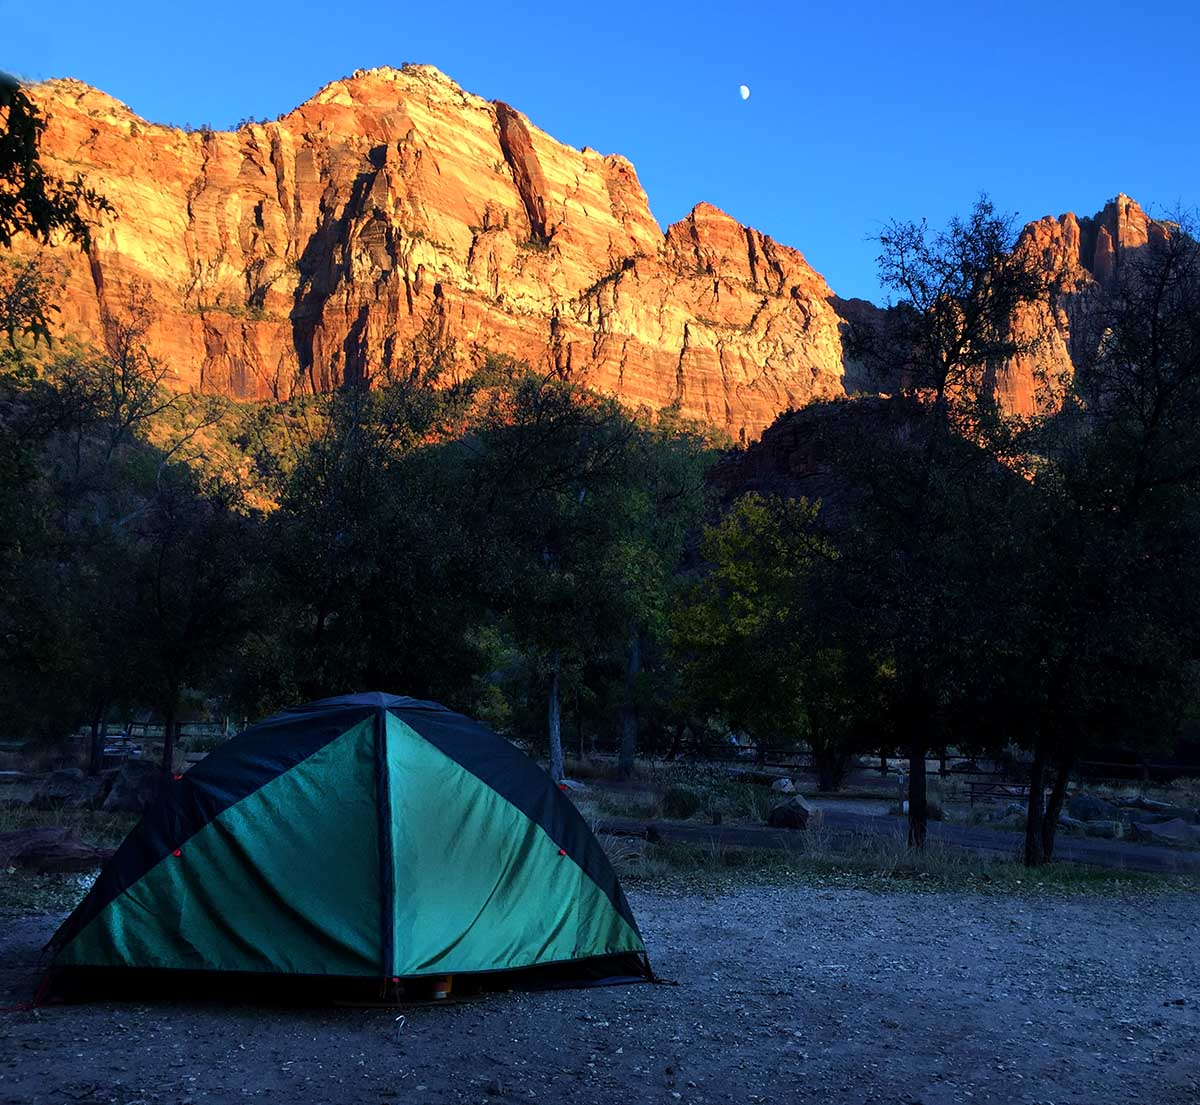 Here are 7 tips for an awesome car camping experience geared toward first timers.